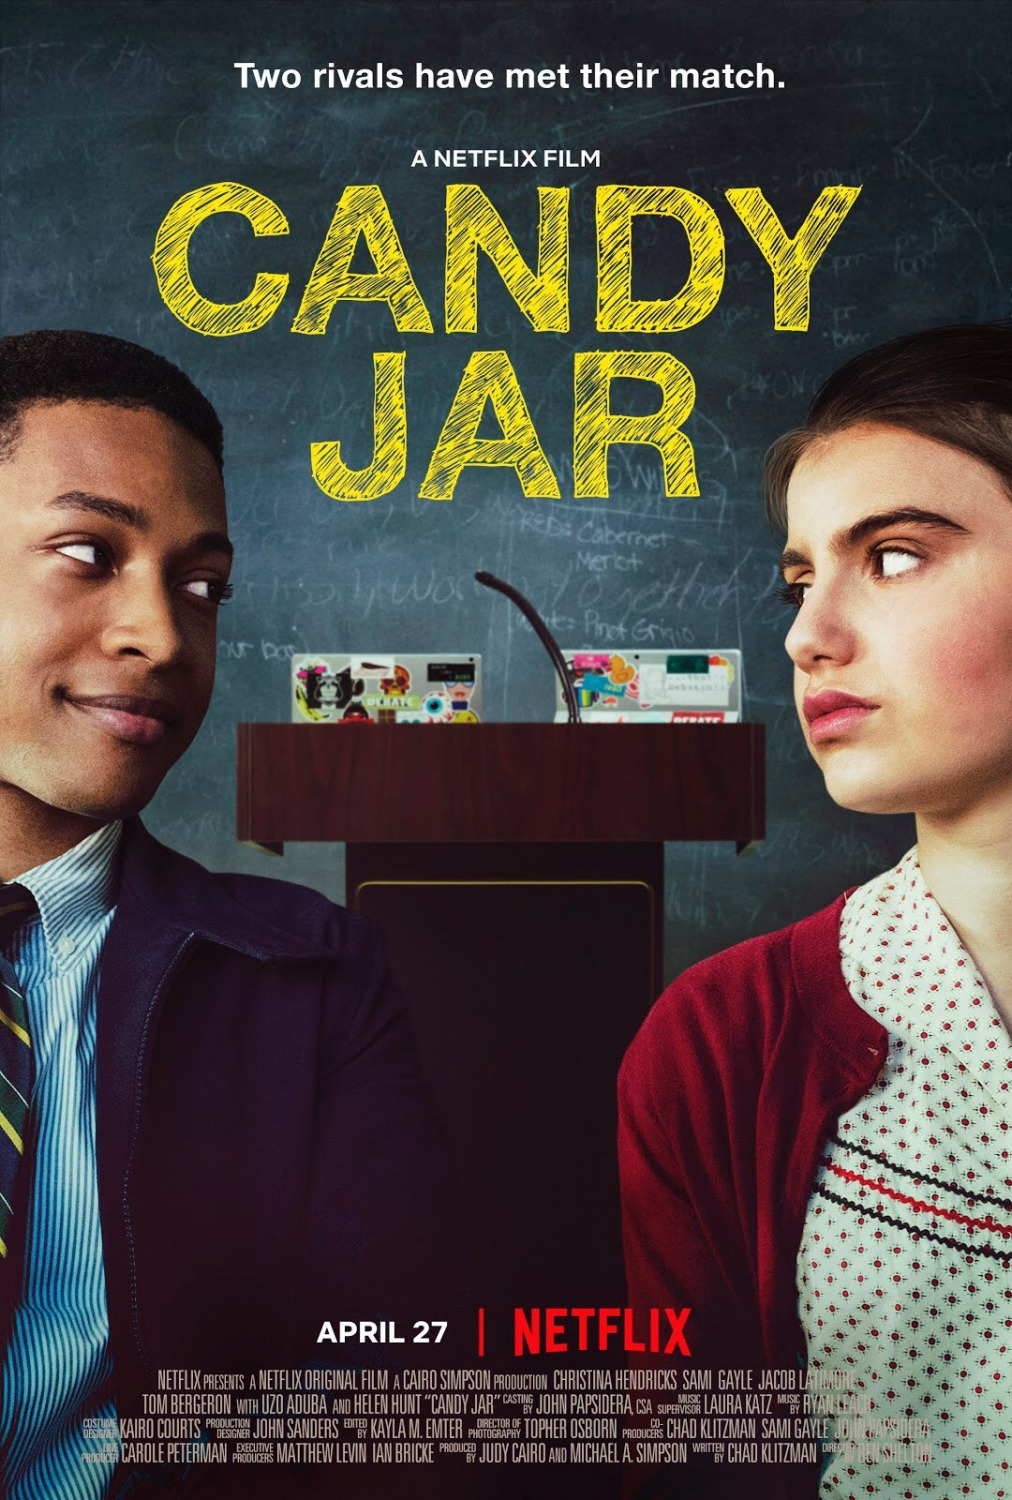 Download Candy Jar (2018) WebRip 720p Dual Audio [Hindi (Voice Over) Dubbed + English] [Full Movie] Full Movie Online On 1xcinema.com